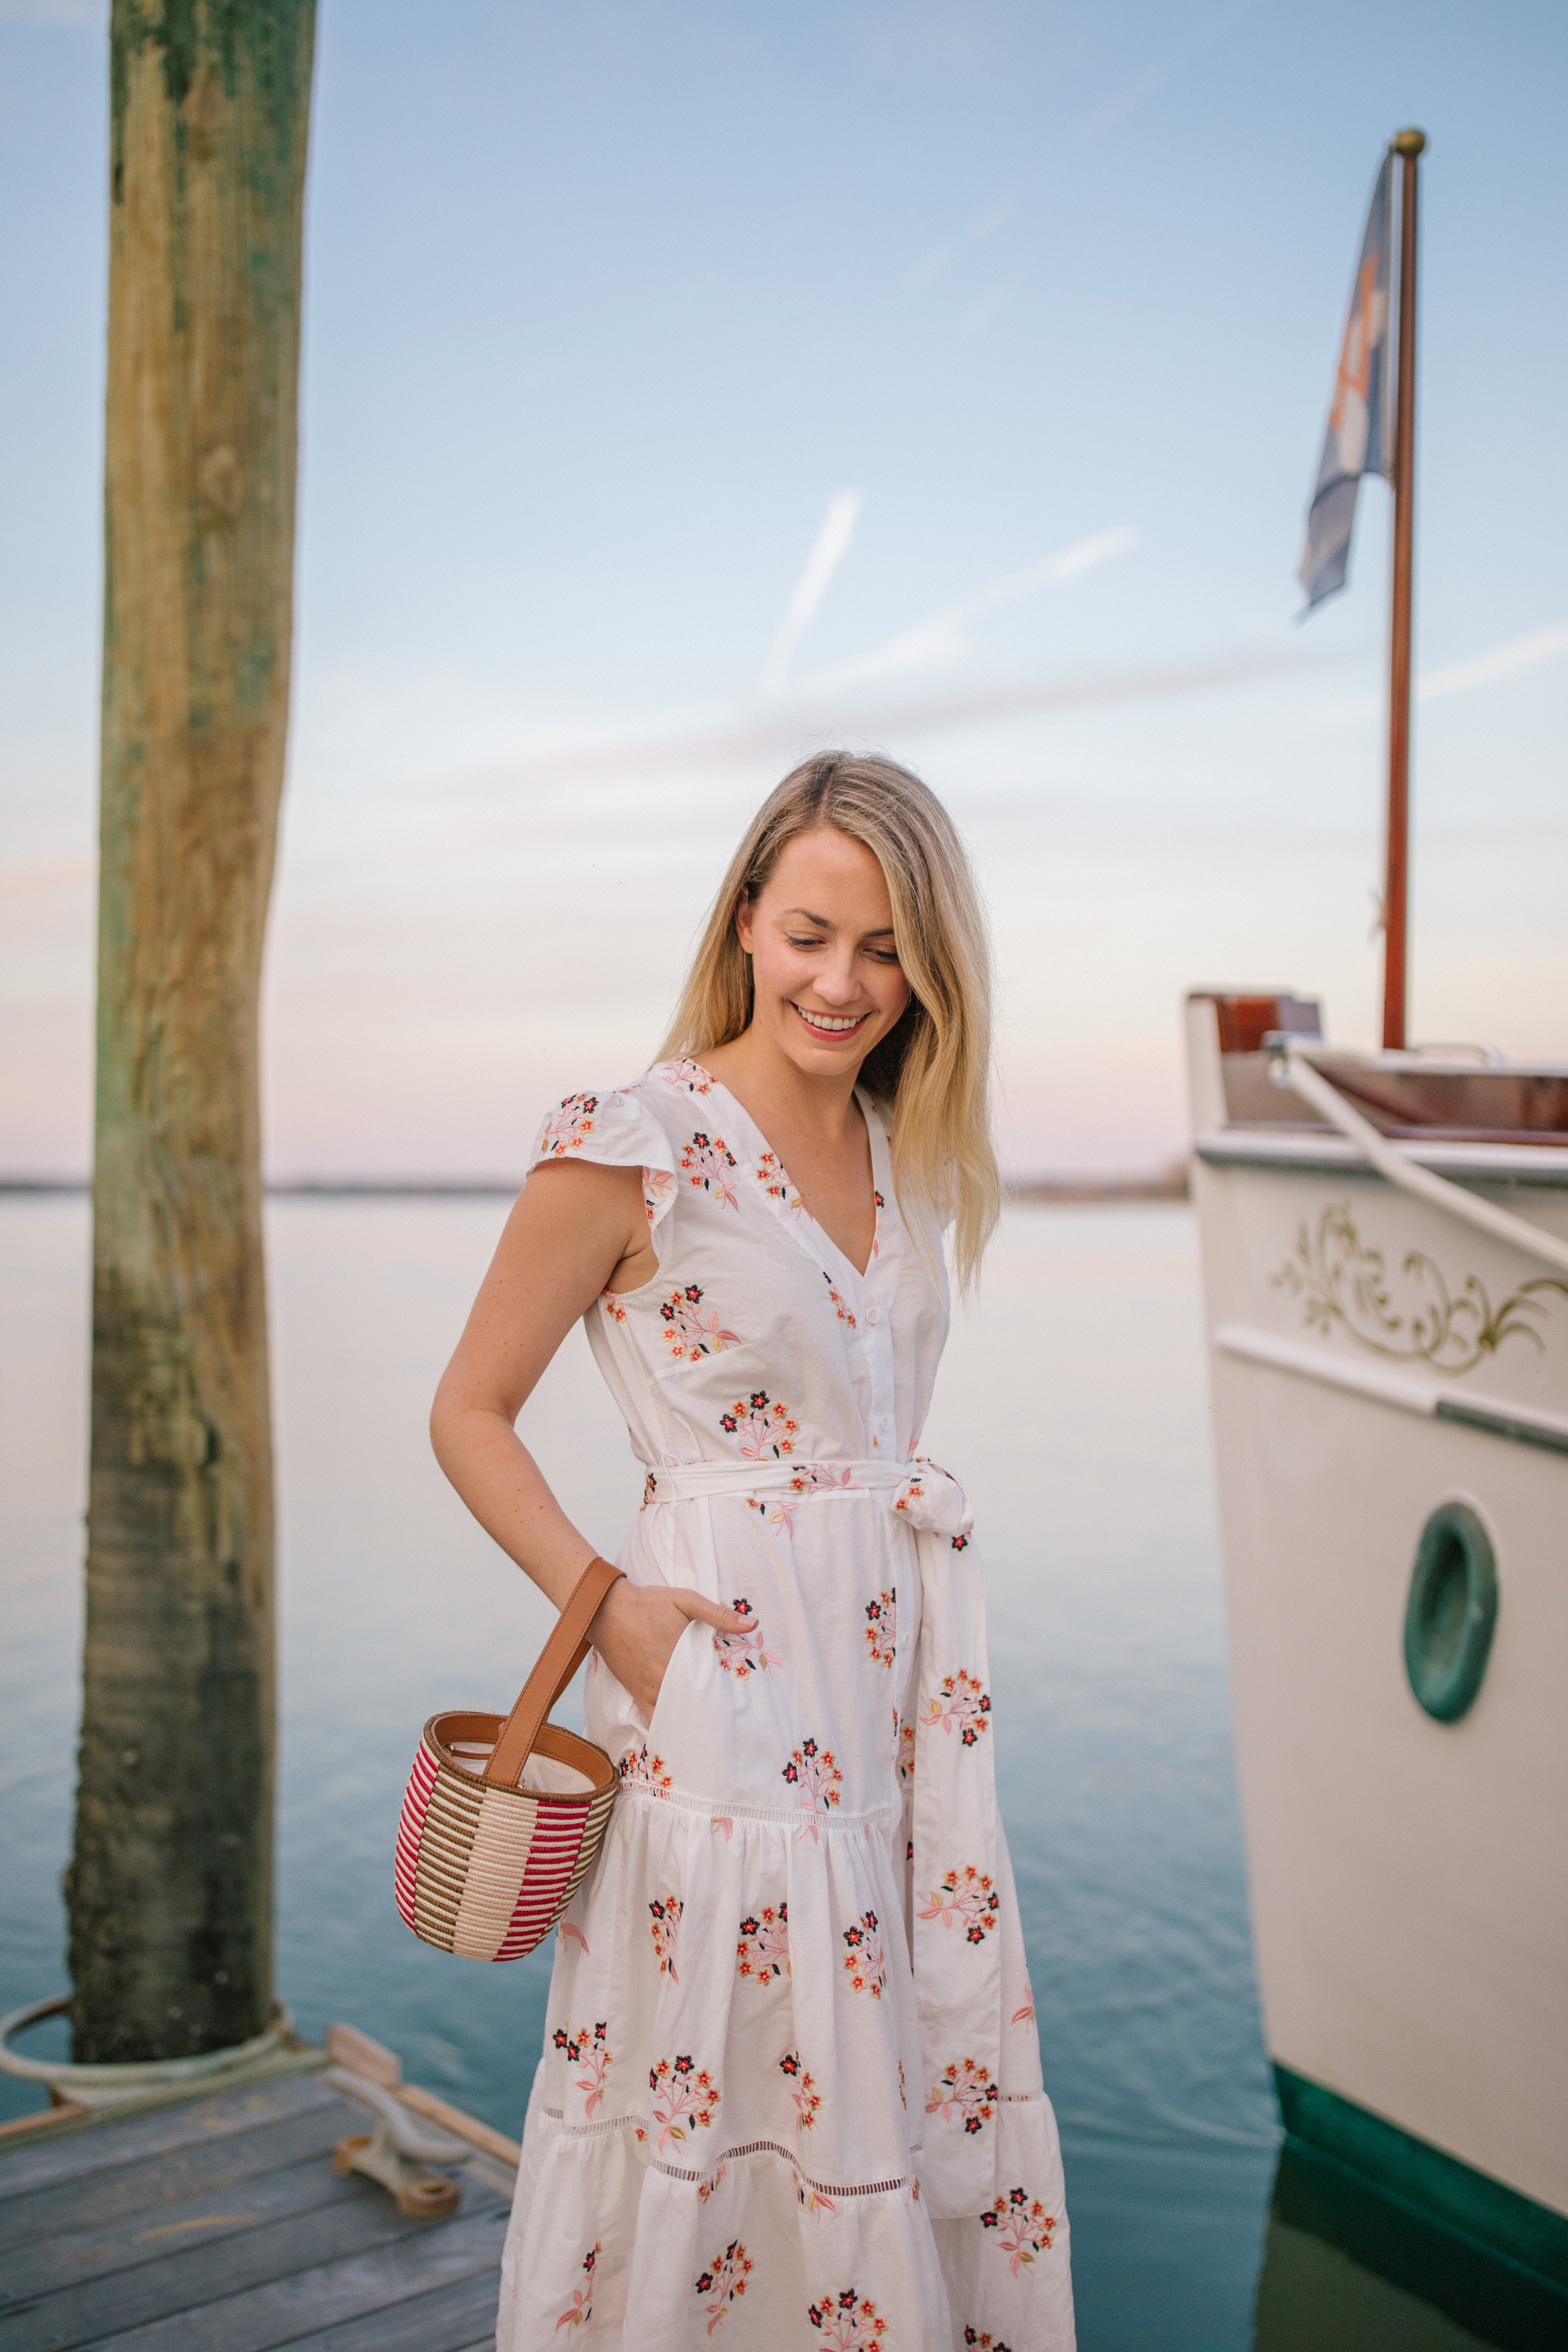 The ultimate packing list for a southern spring getaway | Rhyme & Reason